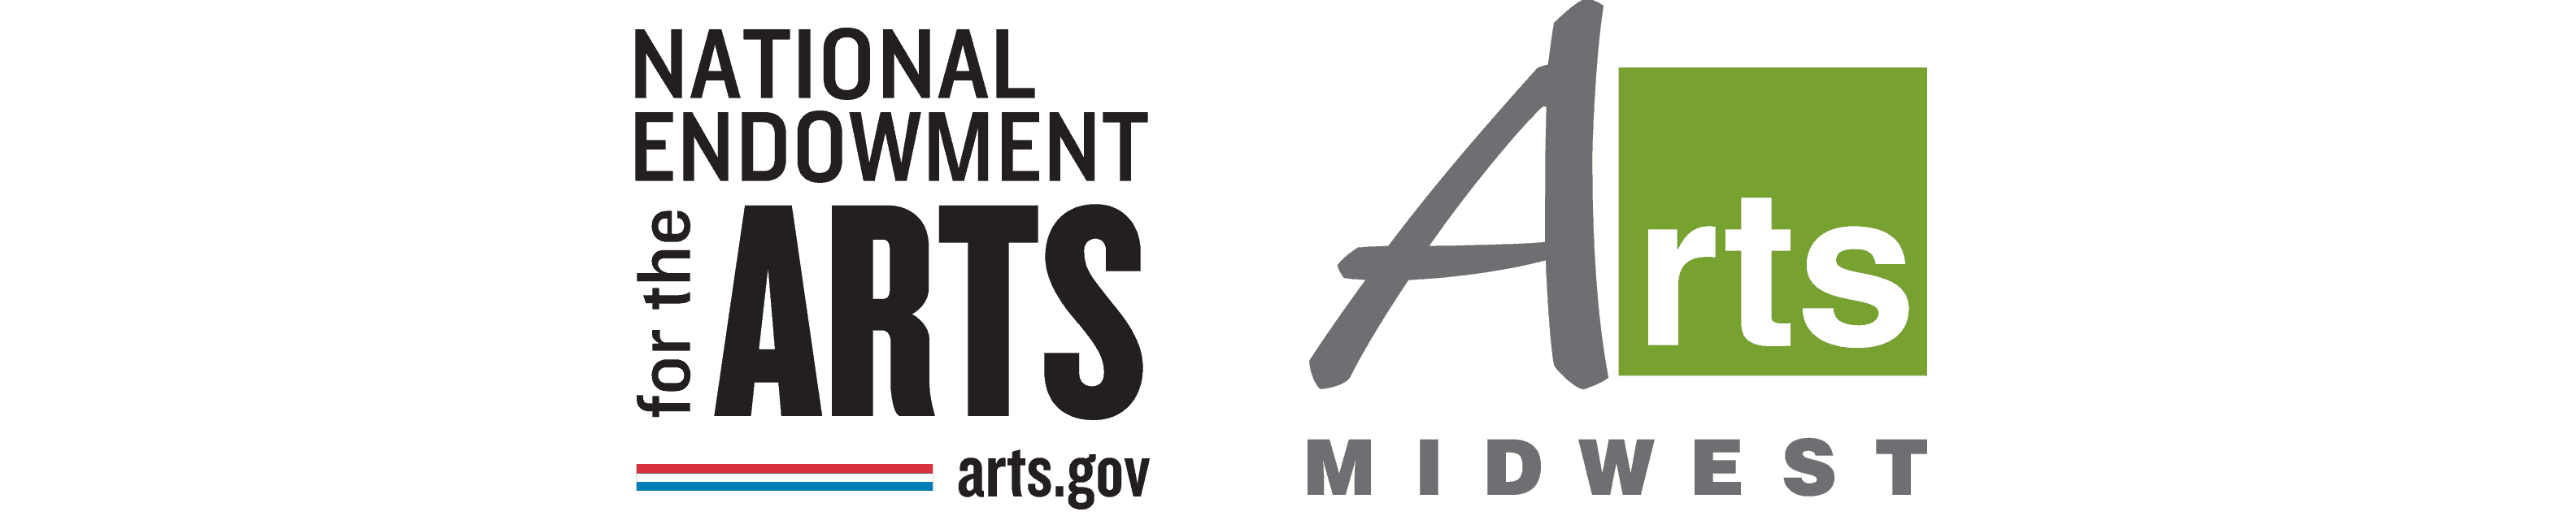 NEA and Arts Midwest Logo